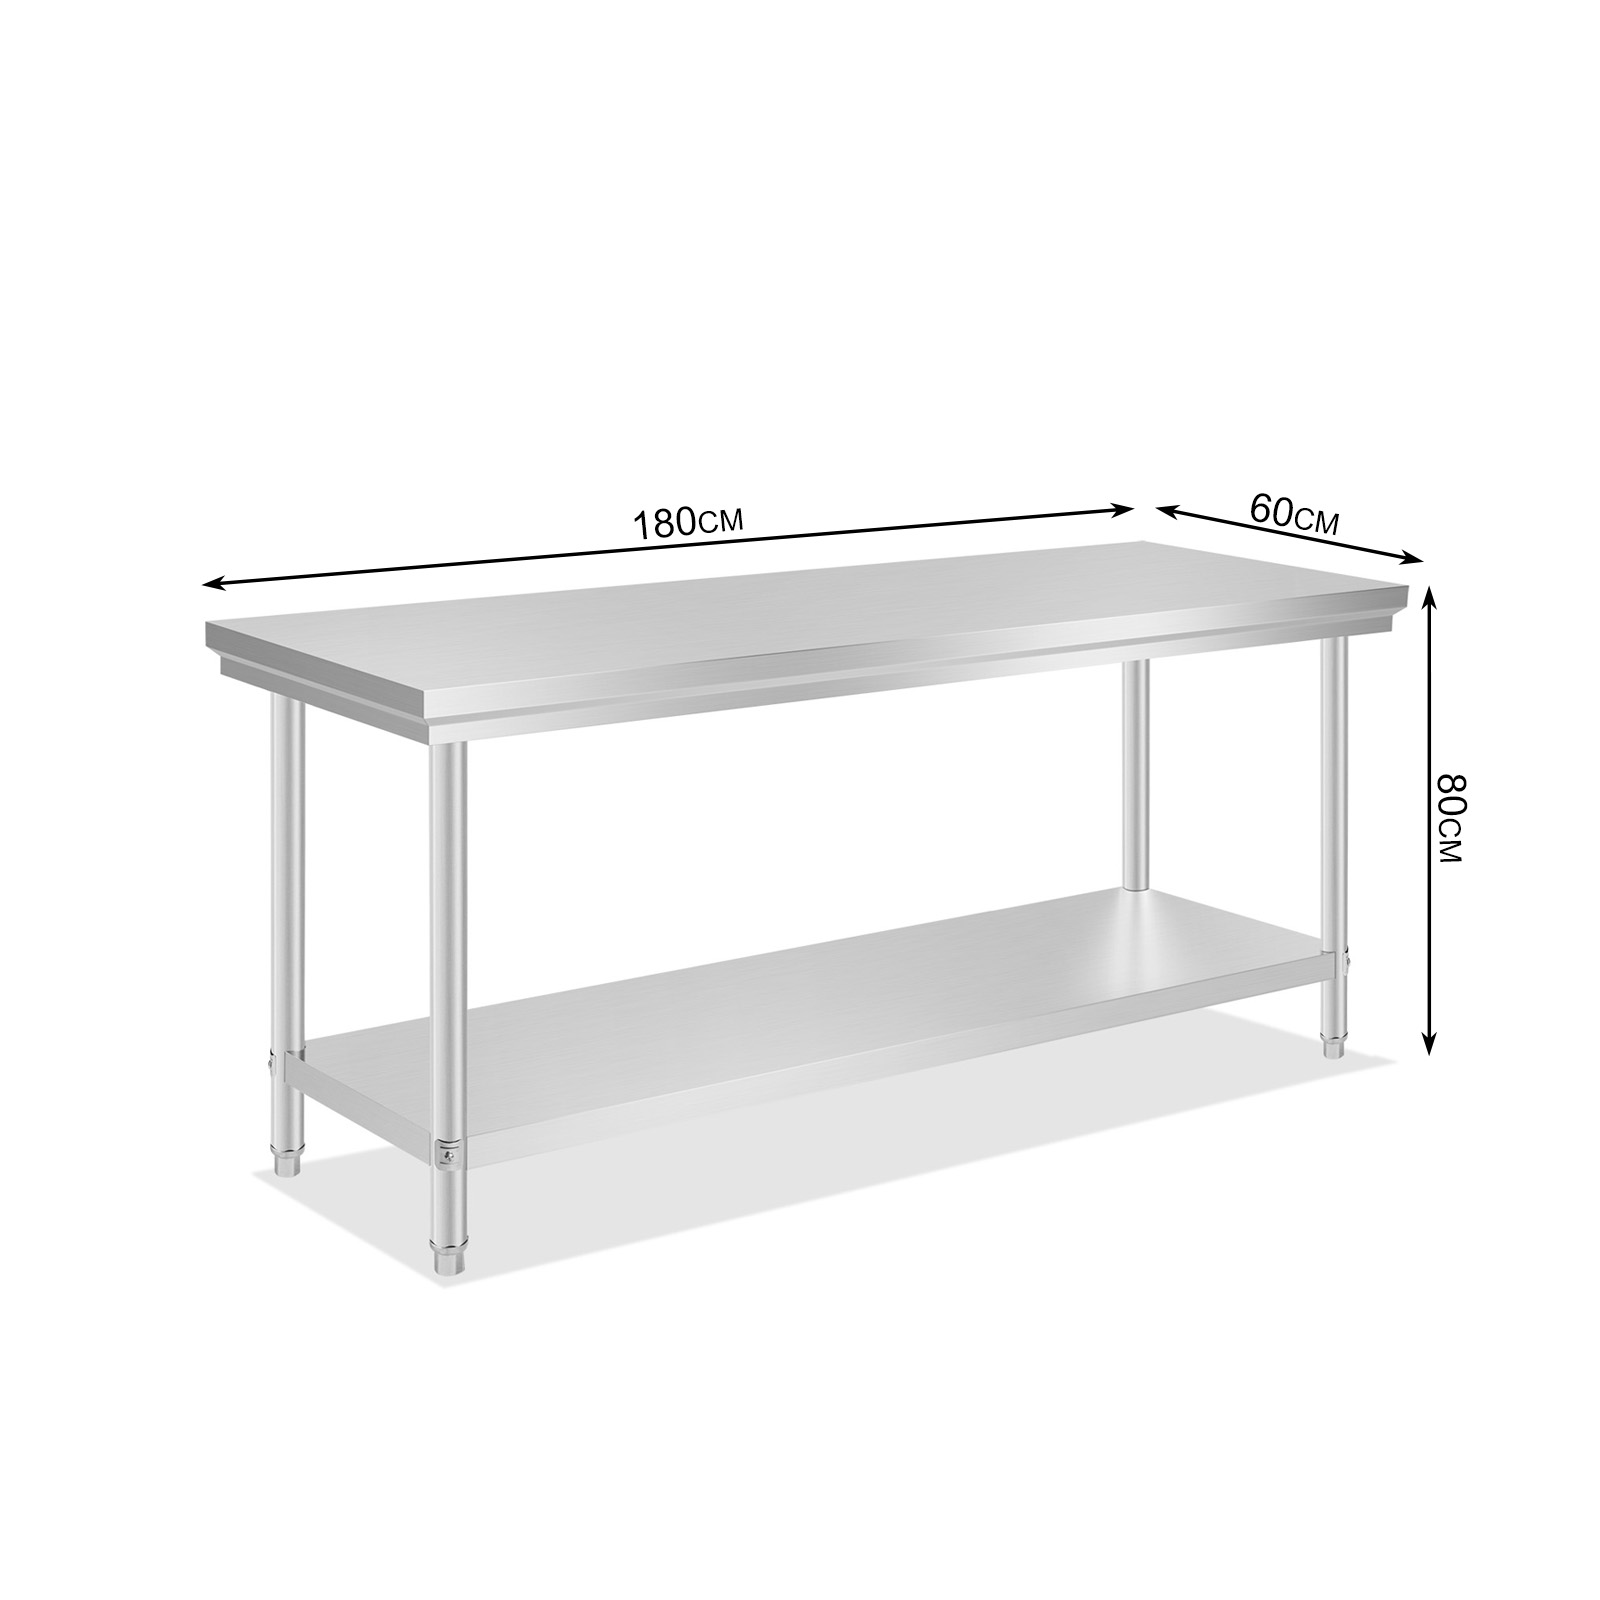 Stainless Steel Kitchen Work Table Kitchen Sohor - Small metal work table